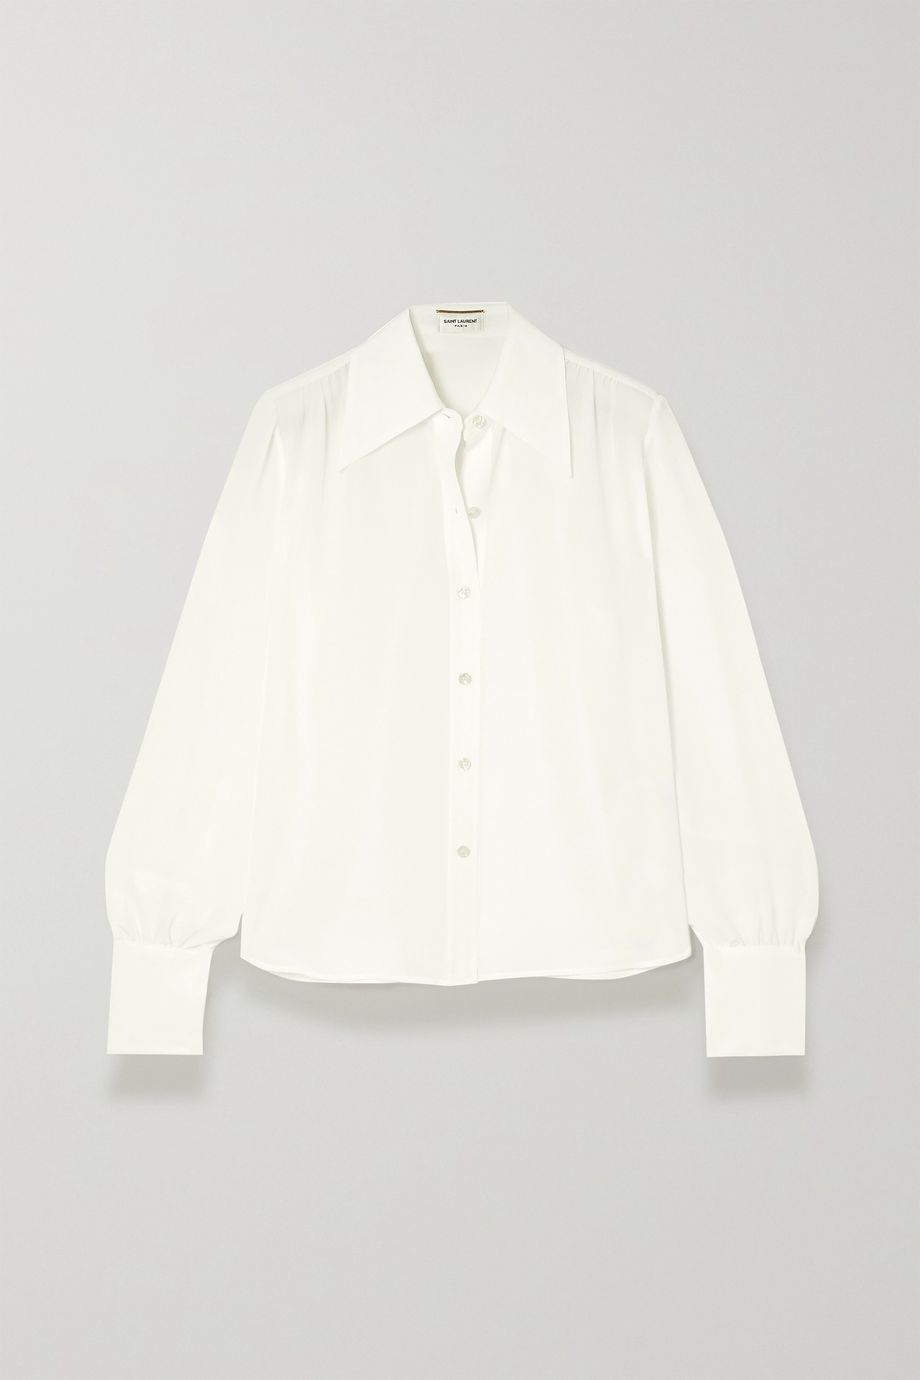 SAINT LAURENT Silk crepe de chine blouse